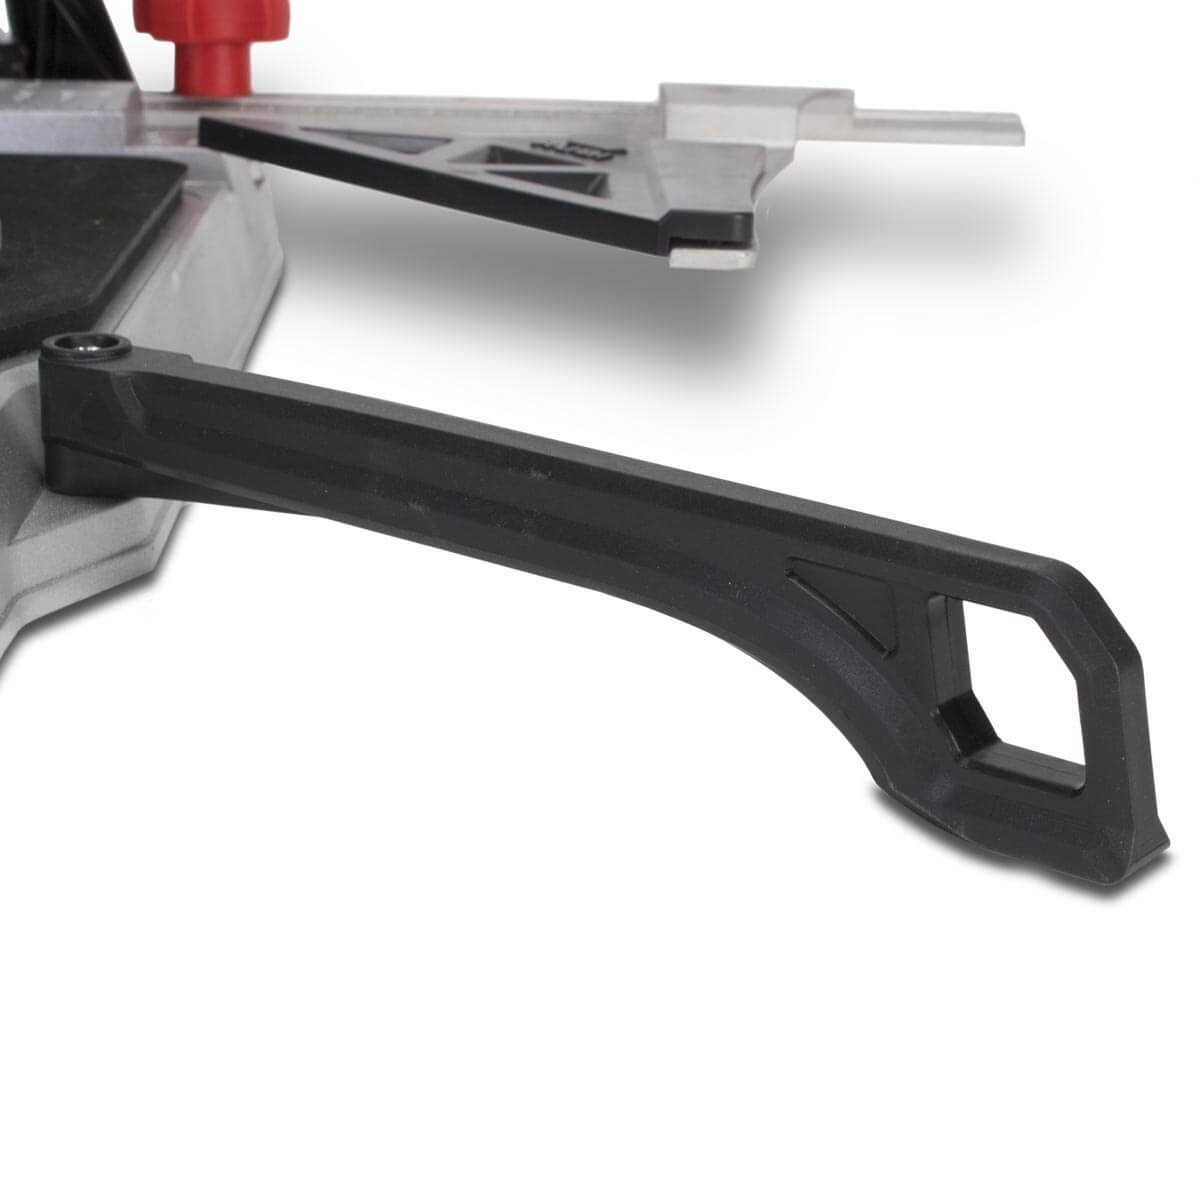 Rubi Speed-N Tile support arm